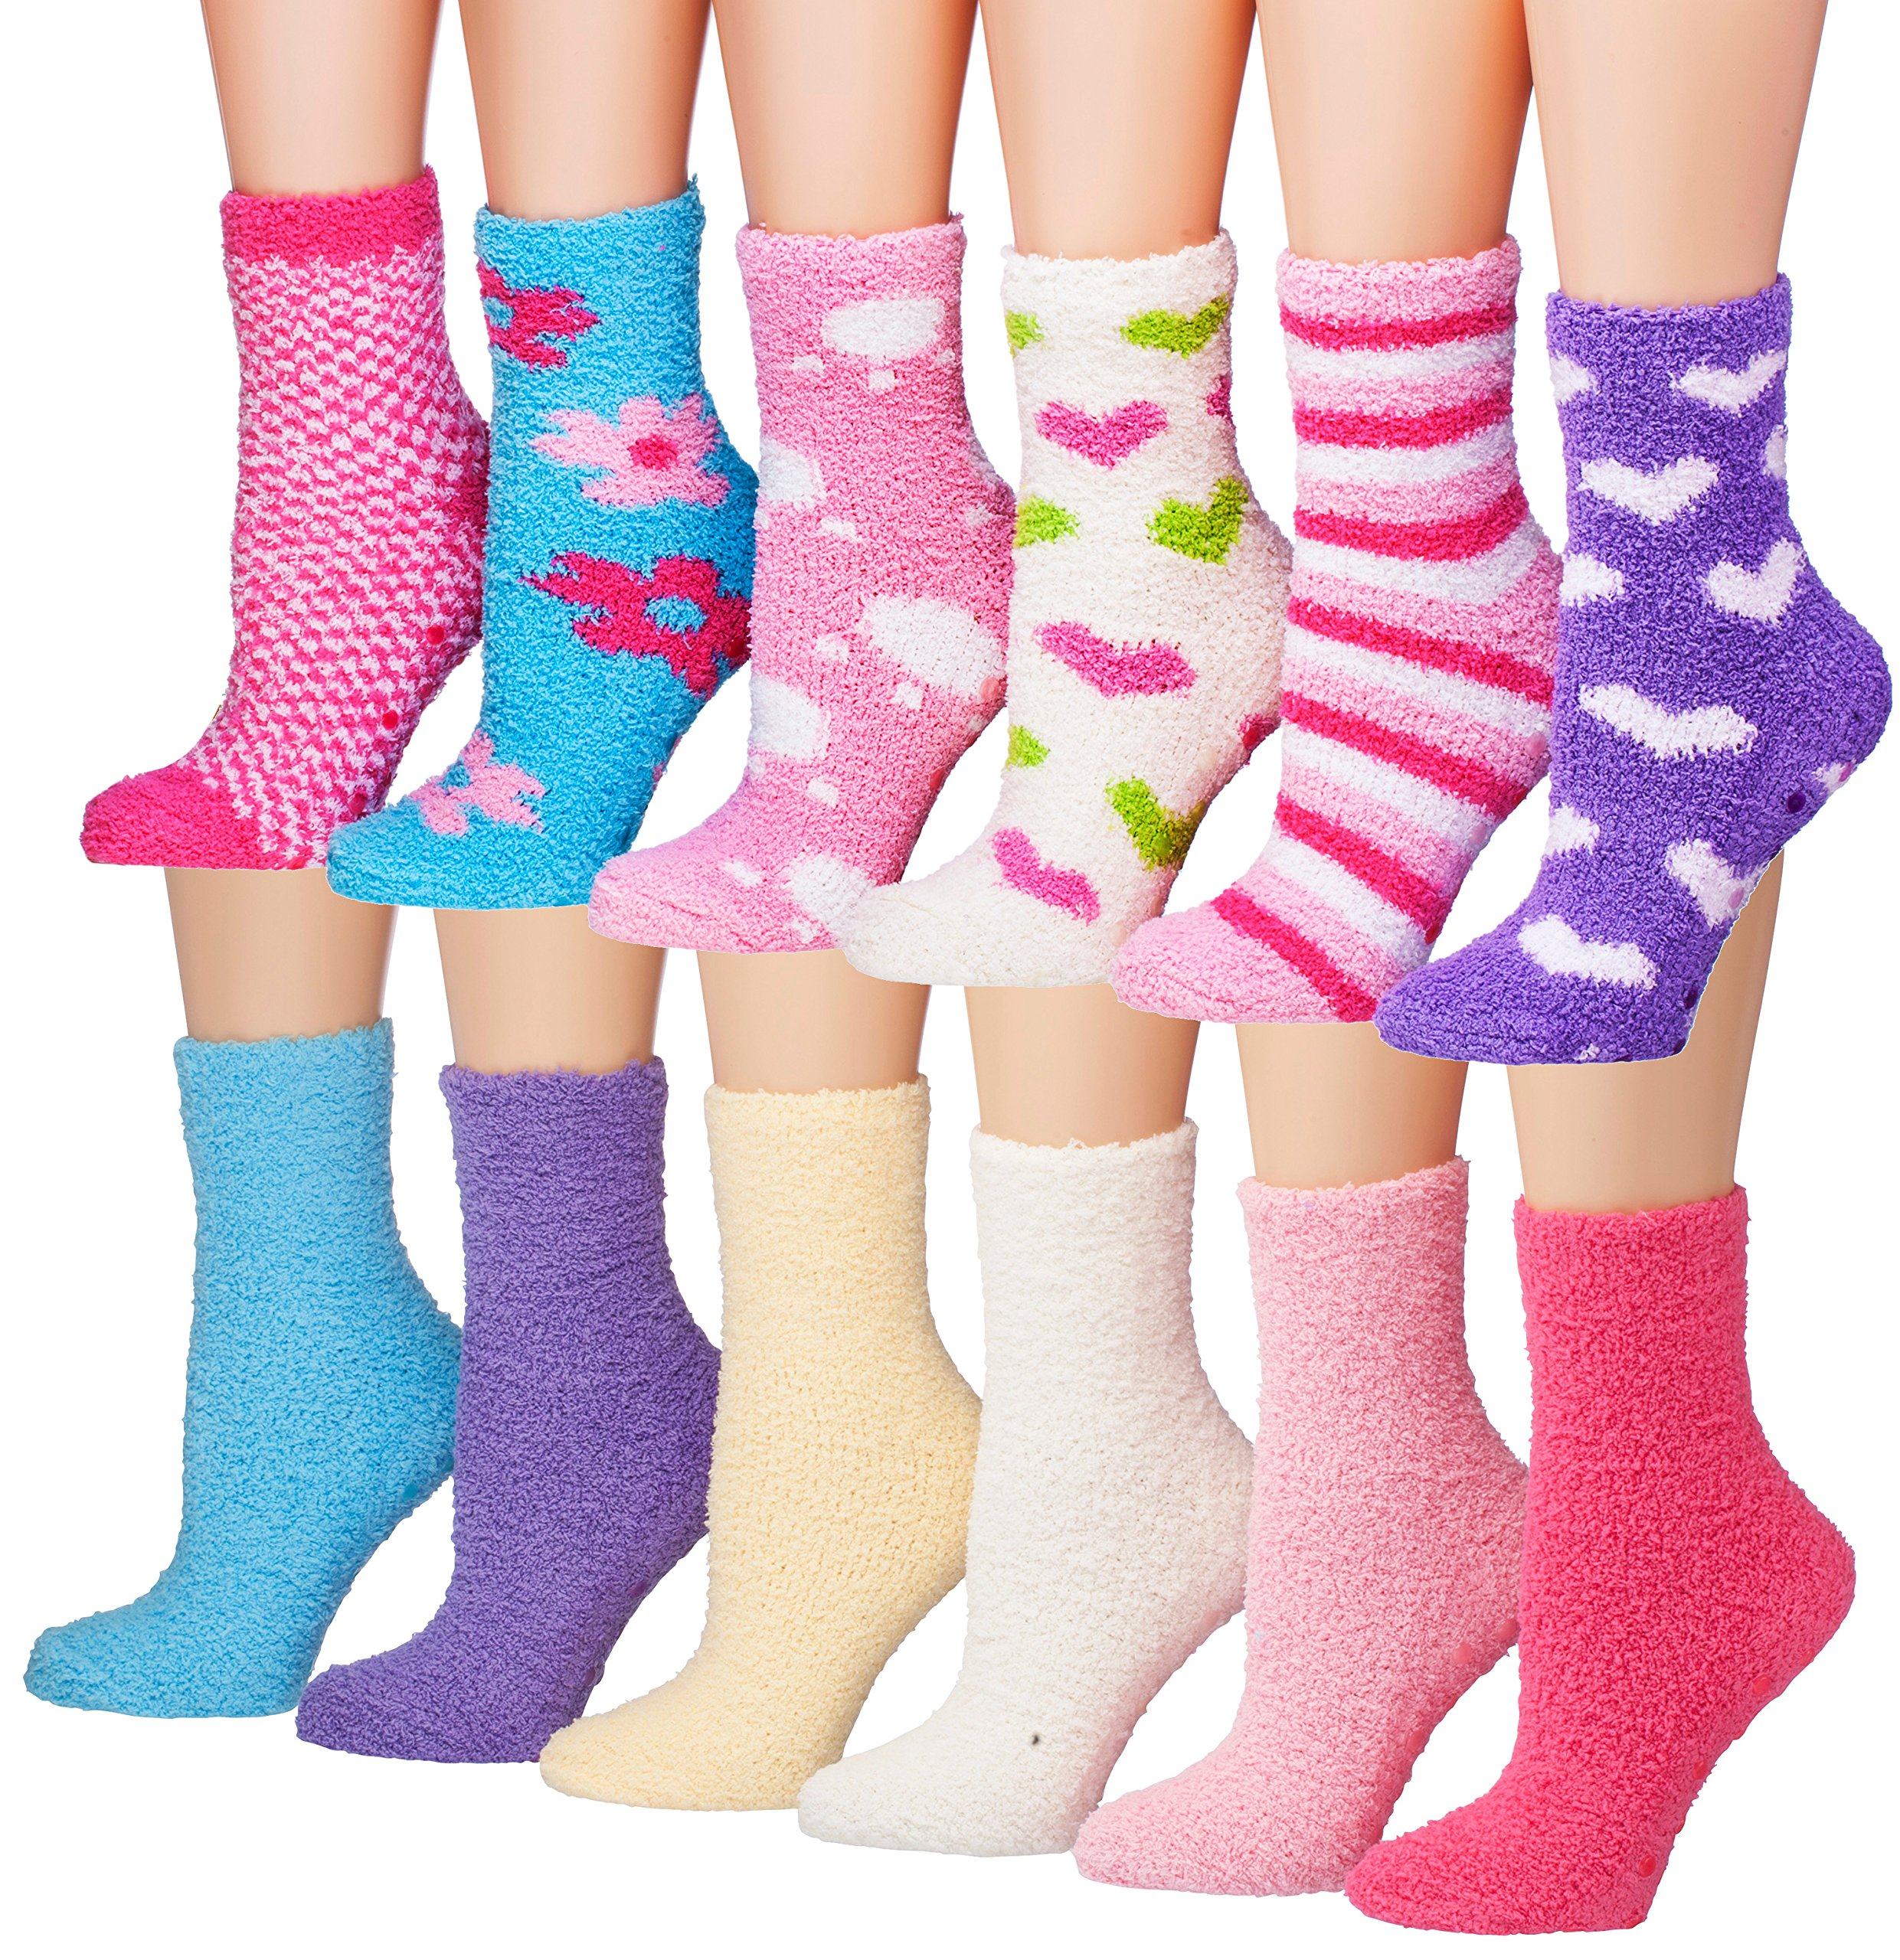 Tipi Toe Women's 12-Pairs Solid Color Hearts Soft Warm Microfiber Winter Fuzzy Crew Socks, (sock size 9-11) Fits shoe size 6-9, FZ04-05